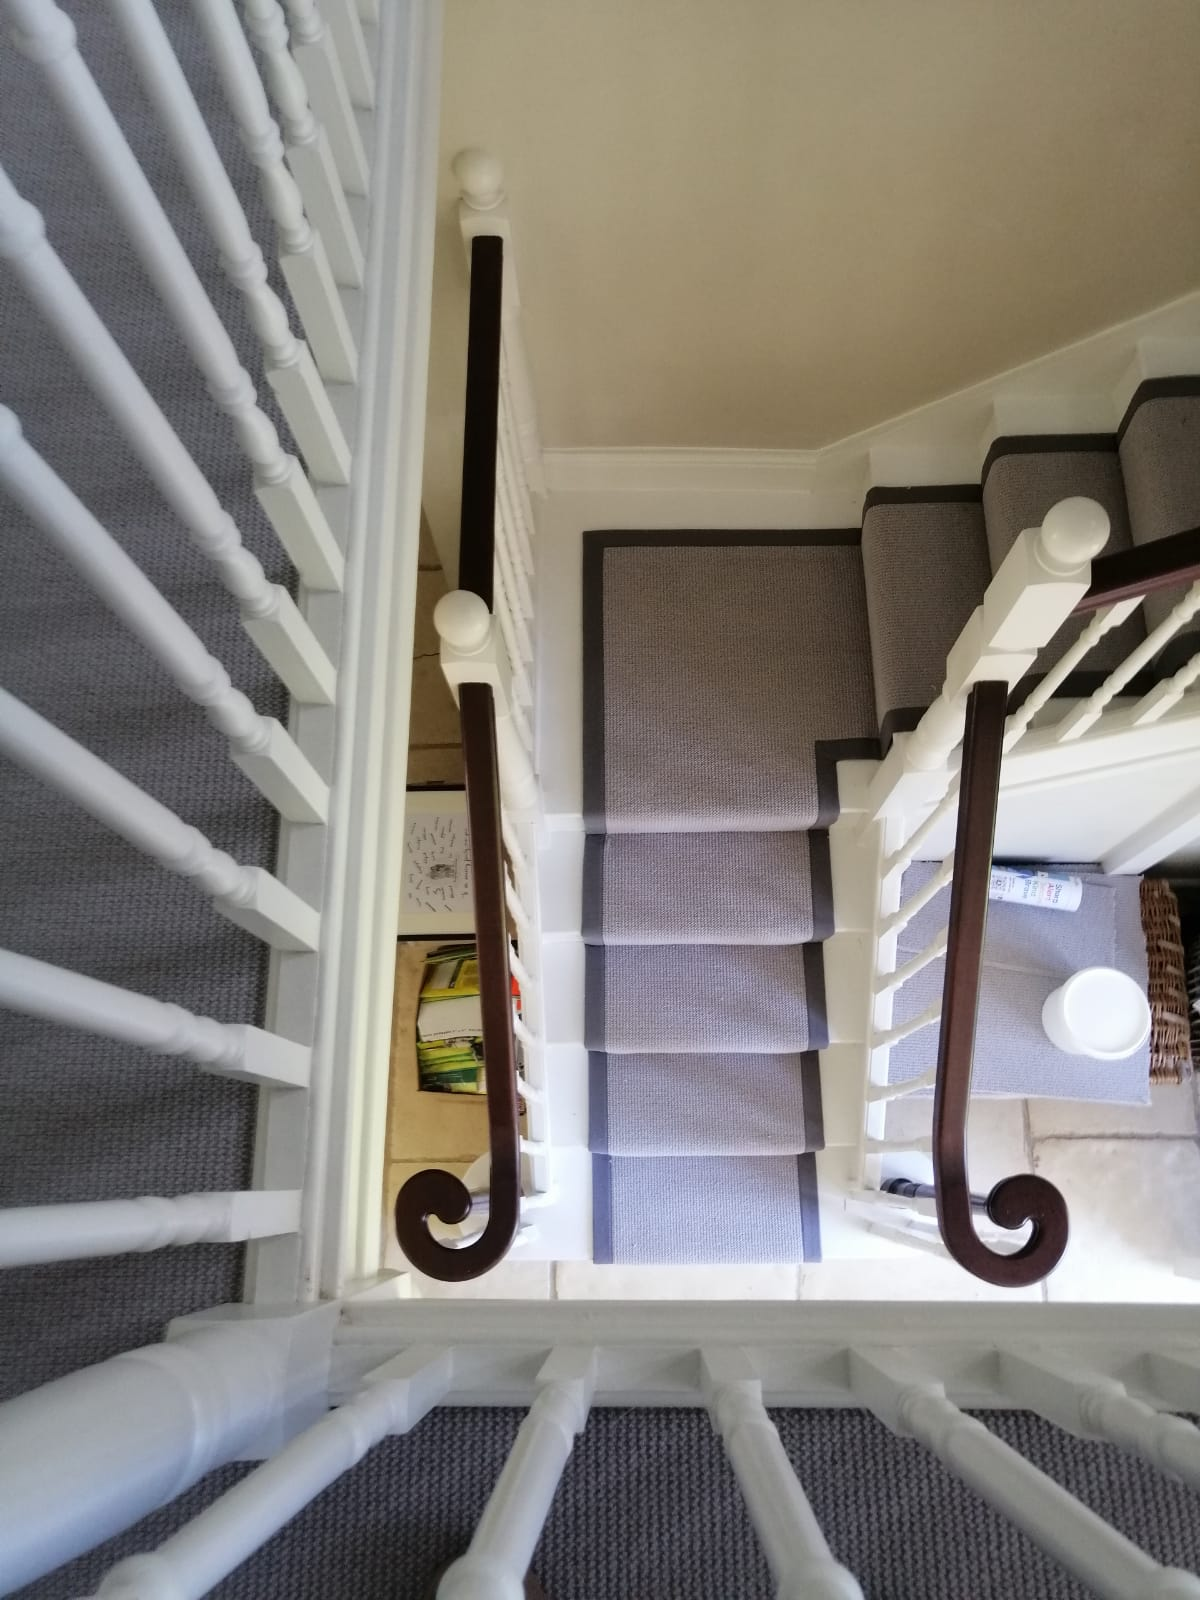 Picture looking down onto a staircase - a recent installation from Tech Floors London